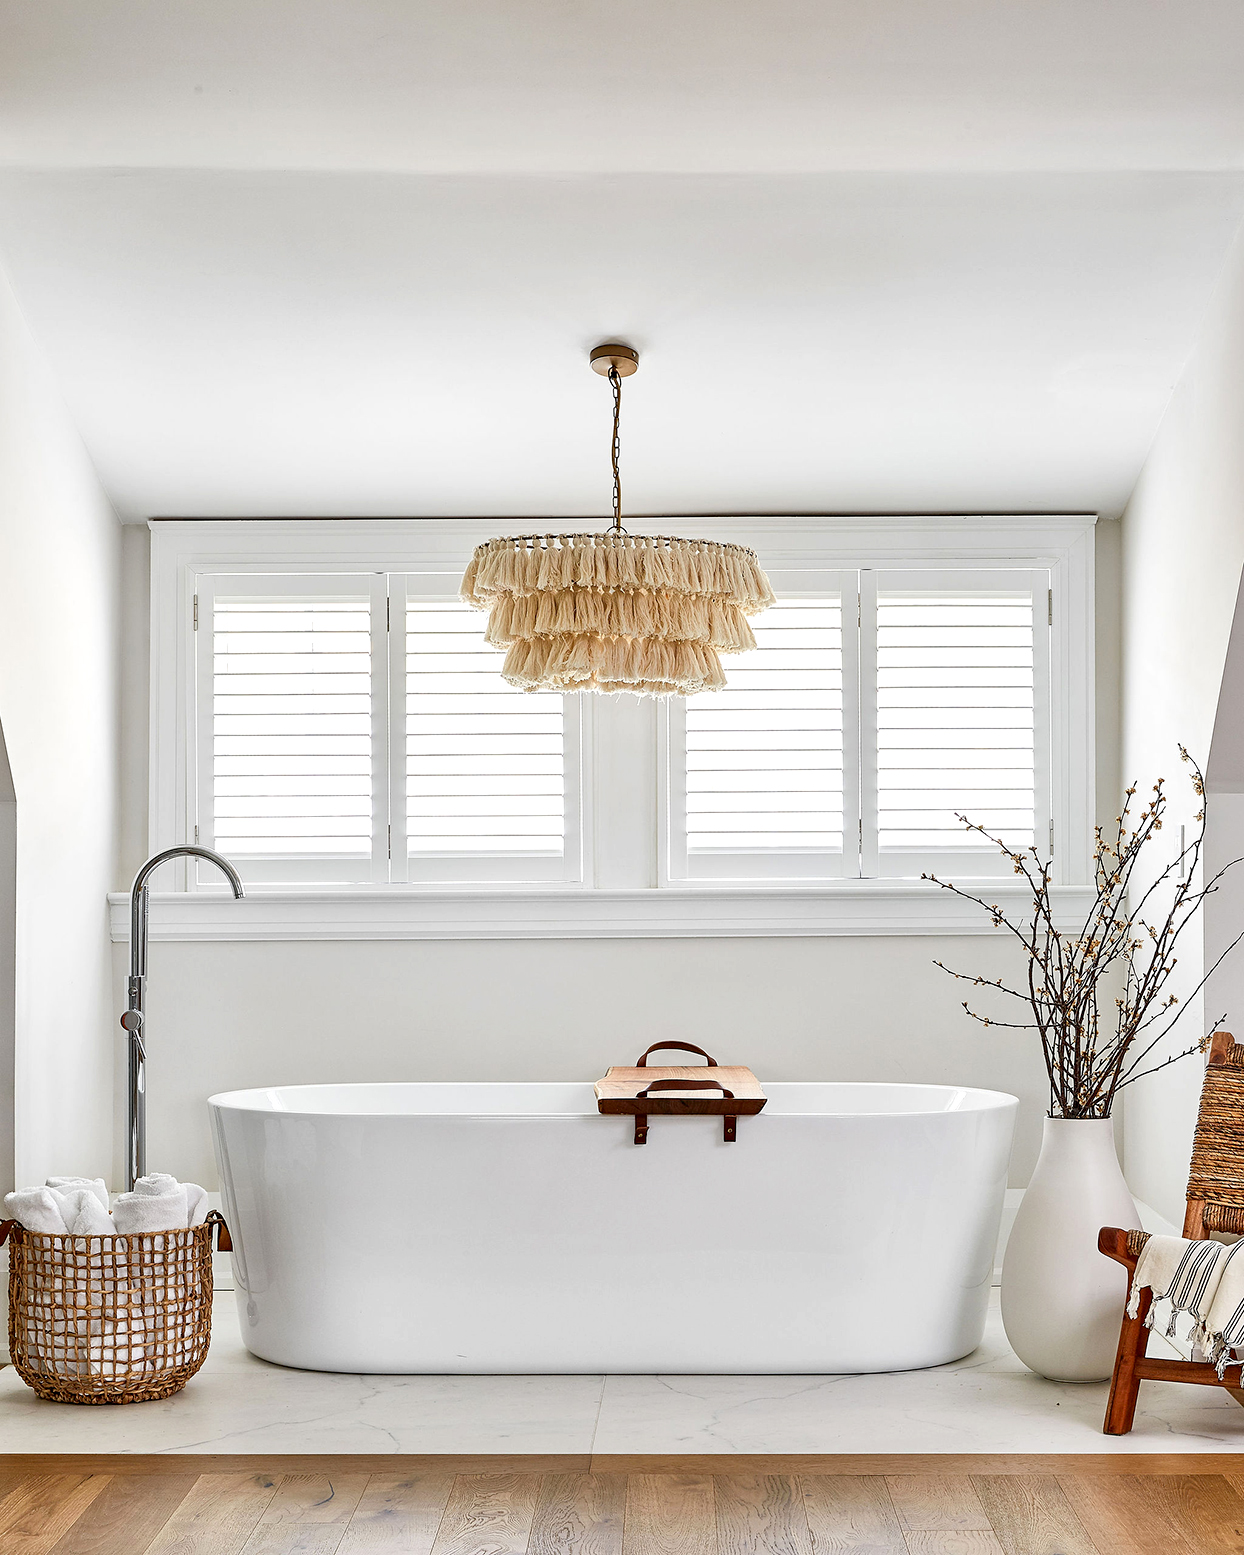 How to Keep Your Bathtub Clean 24/7